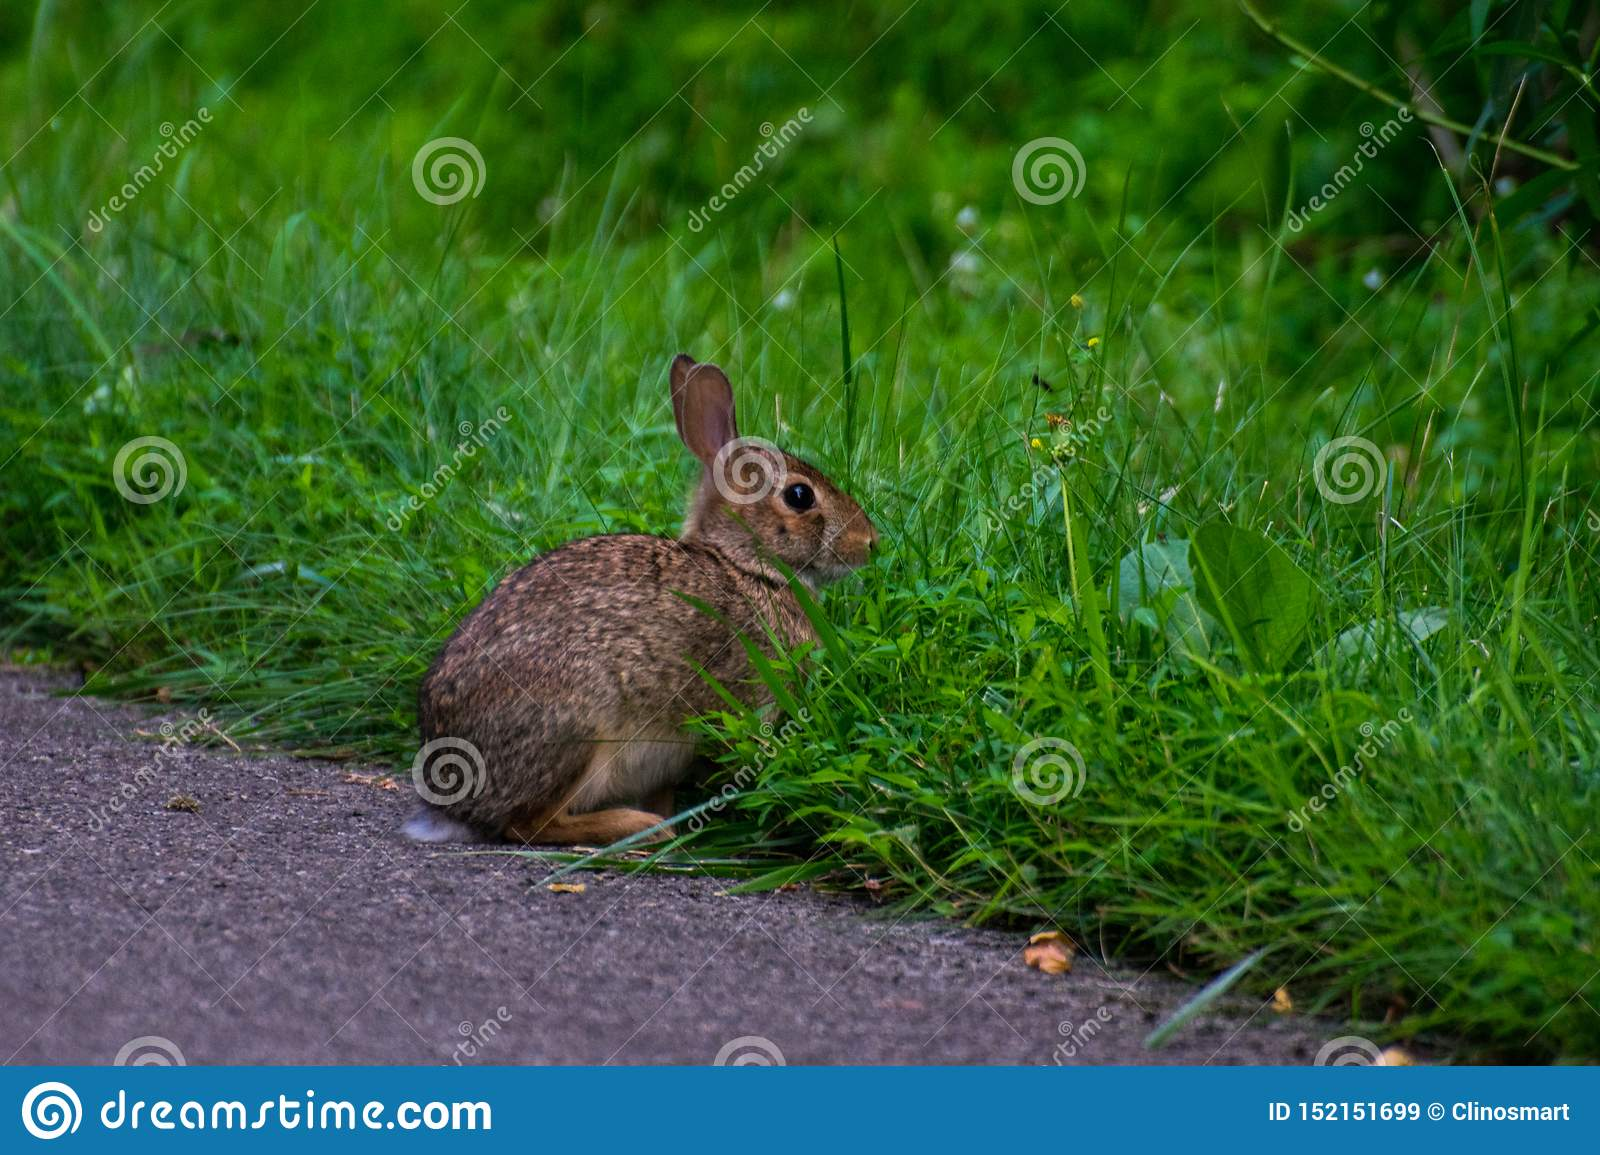 A wild and very cute rabbit